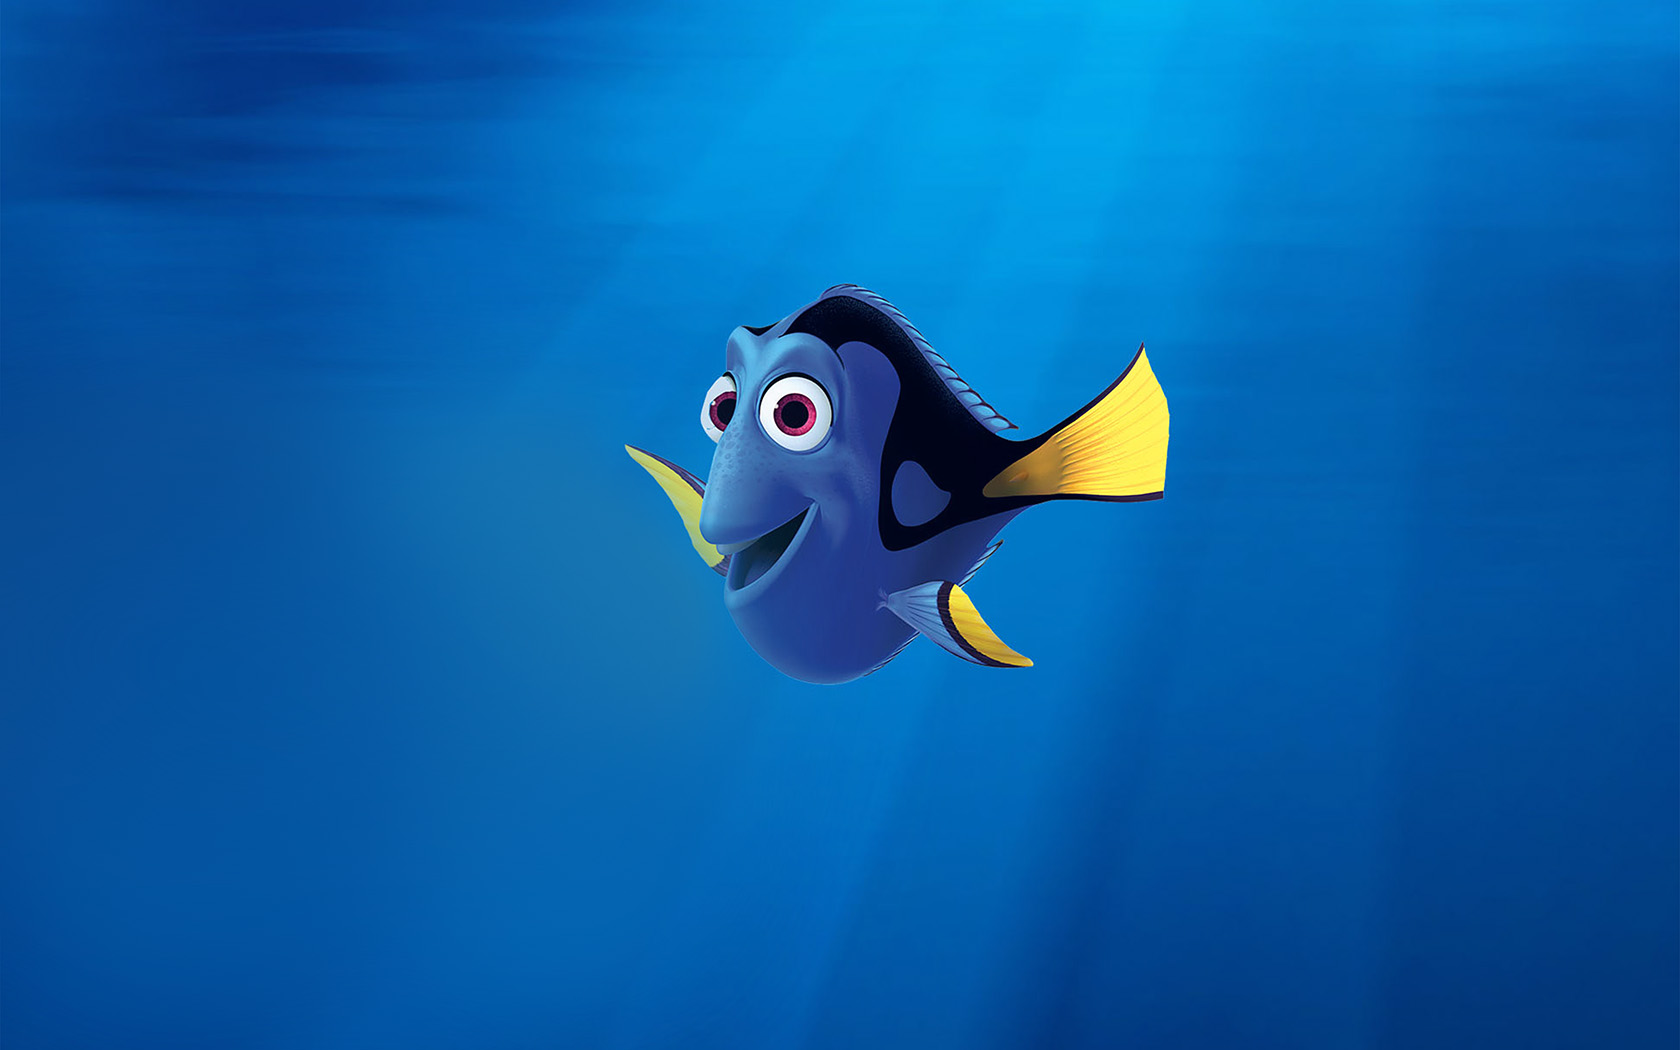 finding nemo essay Finding nemo has some of the sweetest, most profound life lessons wrapped up in one children's movie life lessons that i stress every time we watch it.